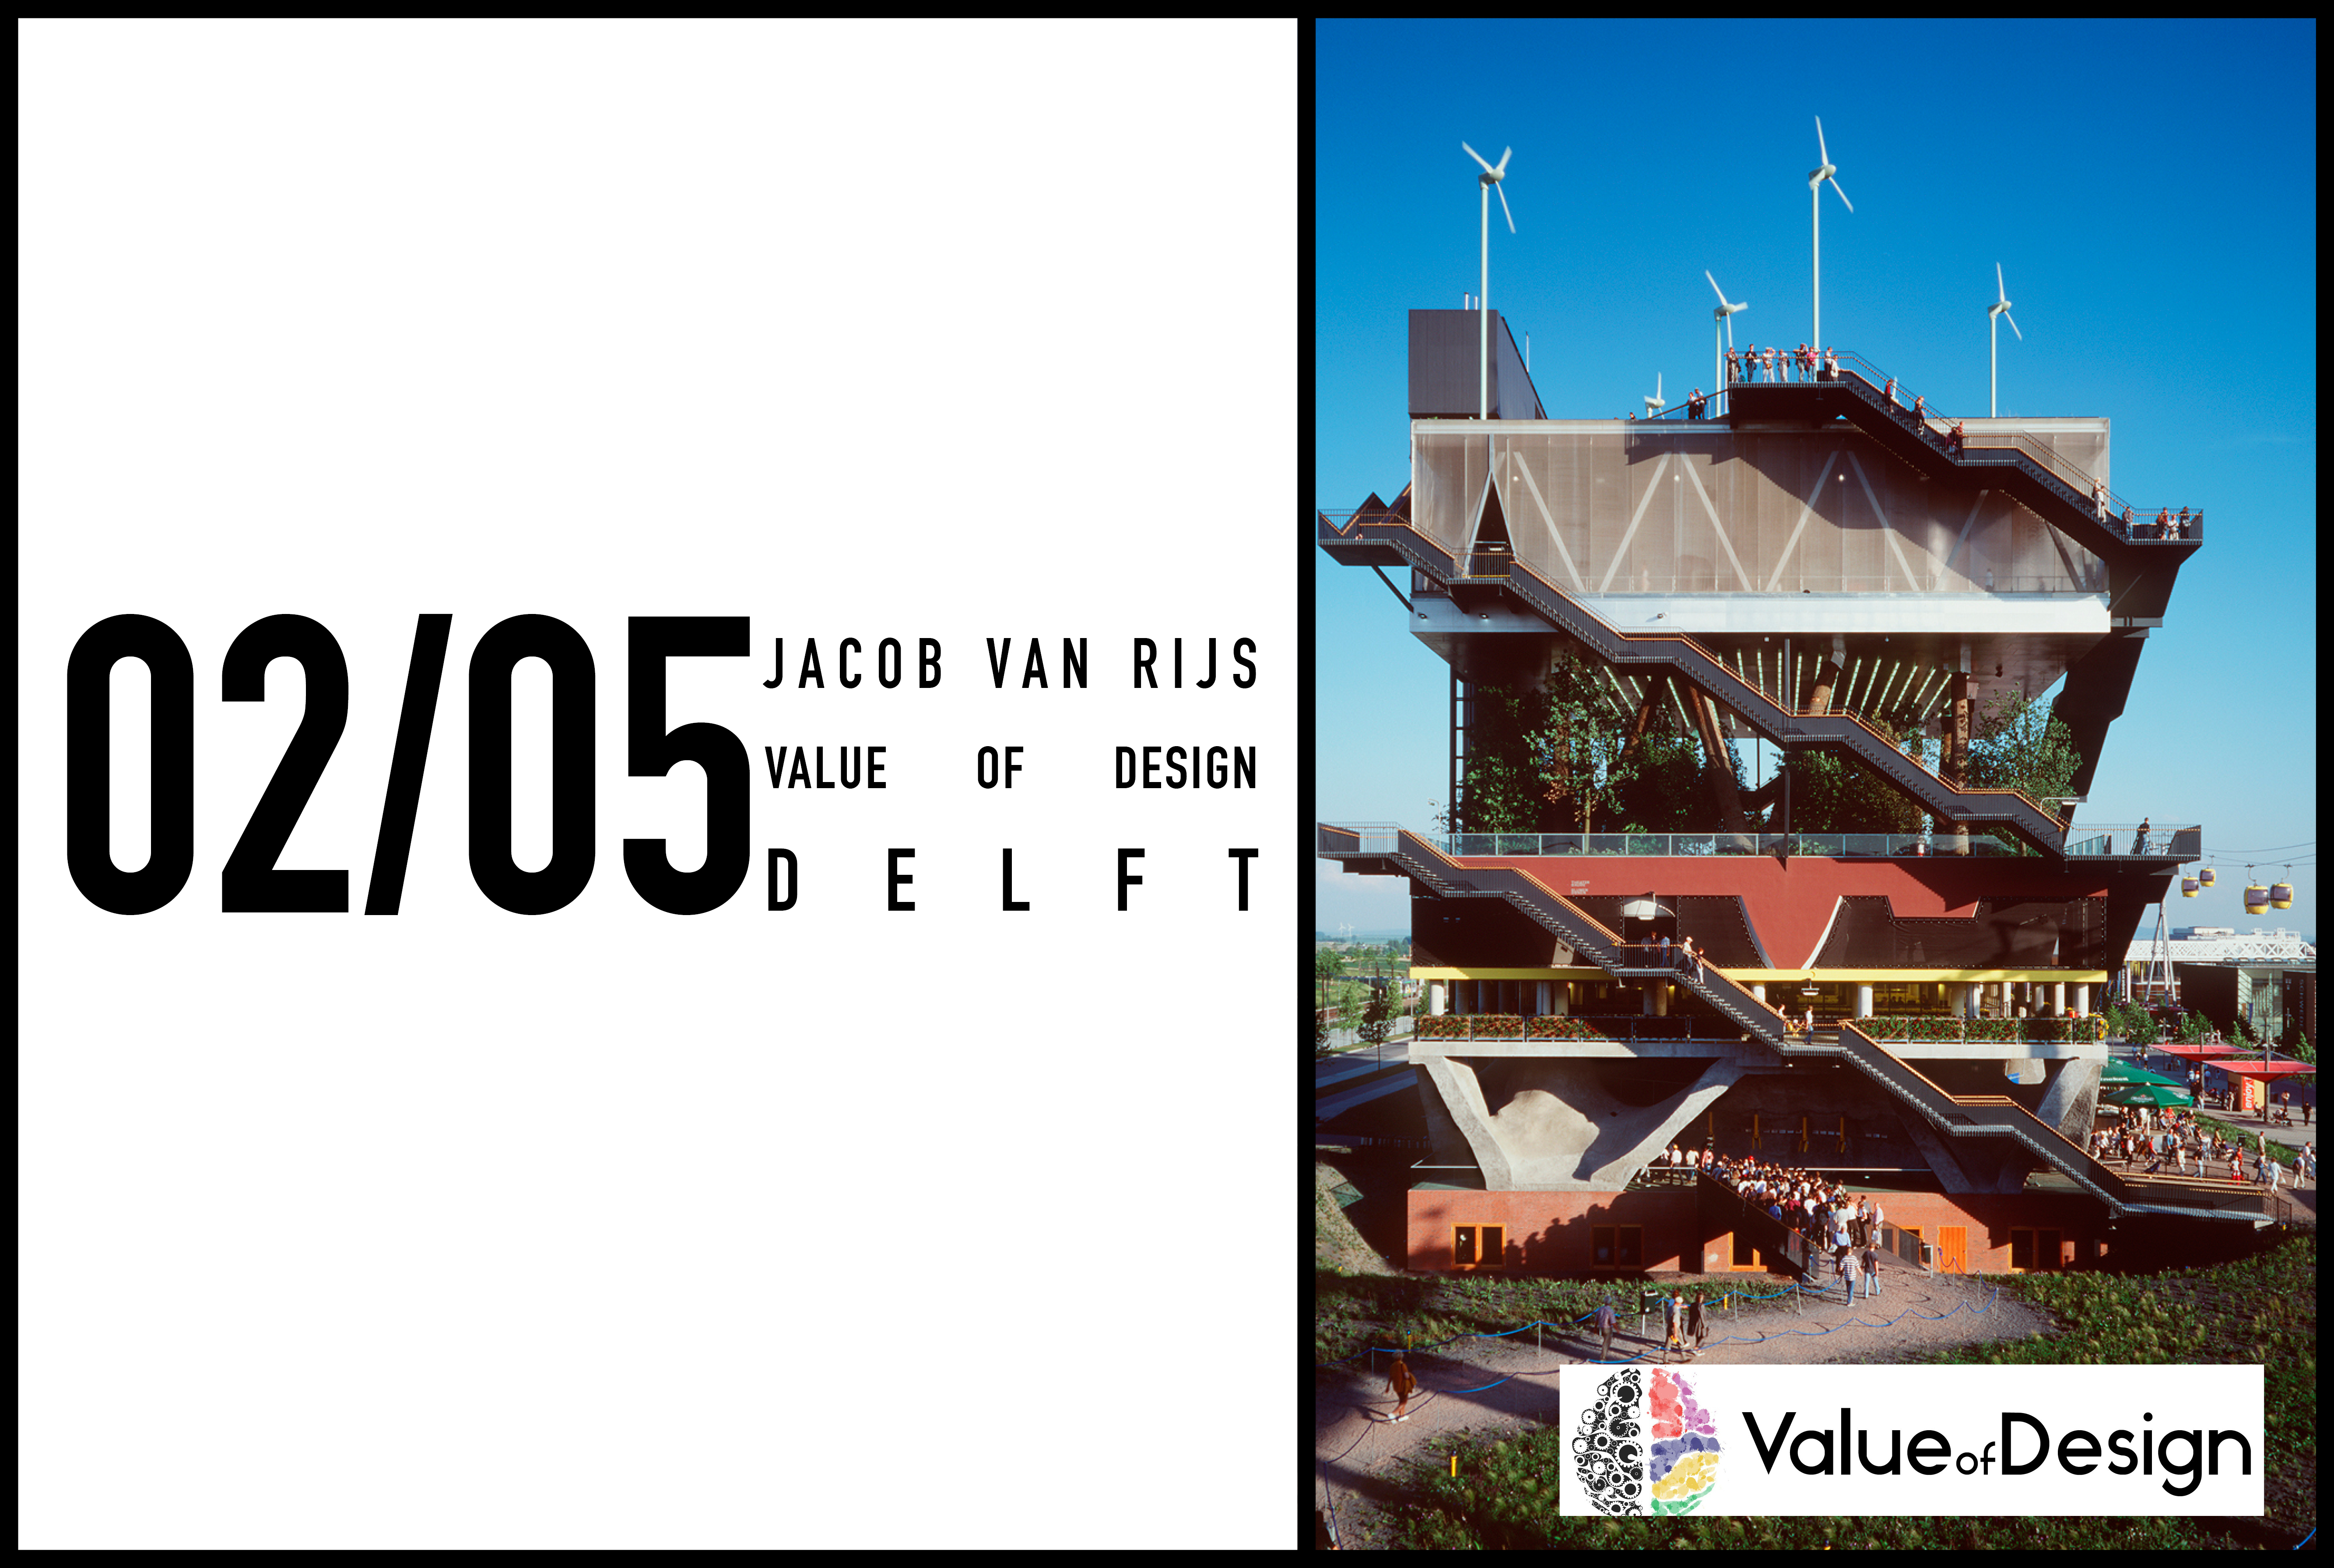 Jacob Van Rijs to give a lecture on the Value of Design at TU Delft, 2 May 2018